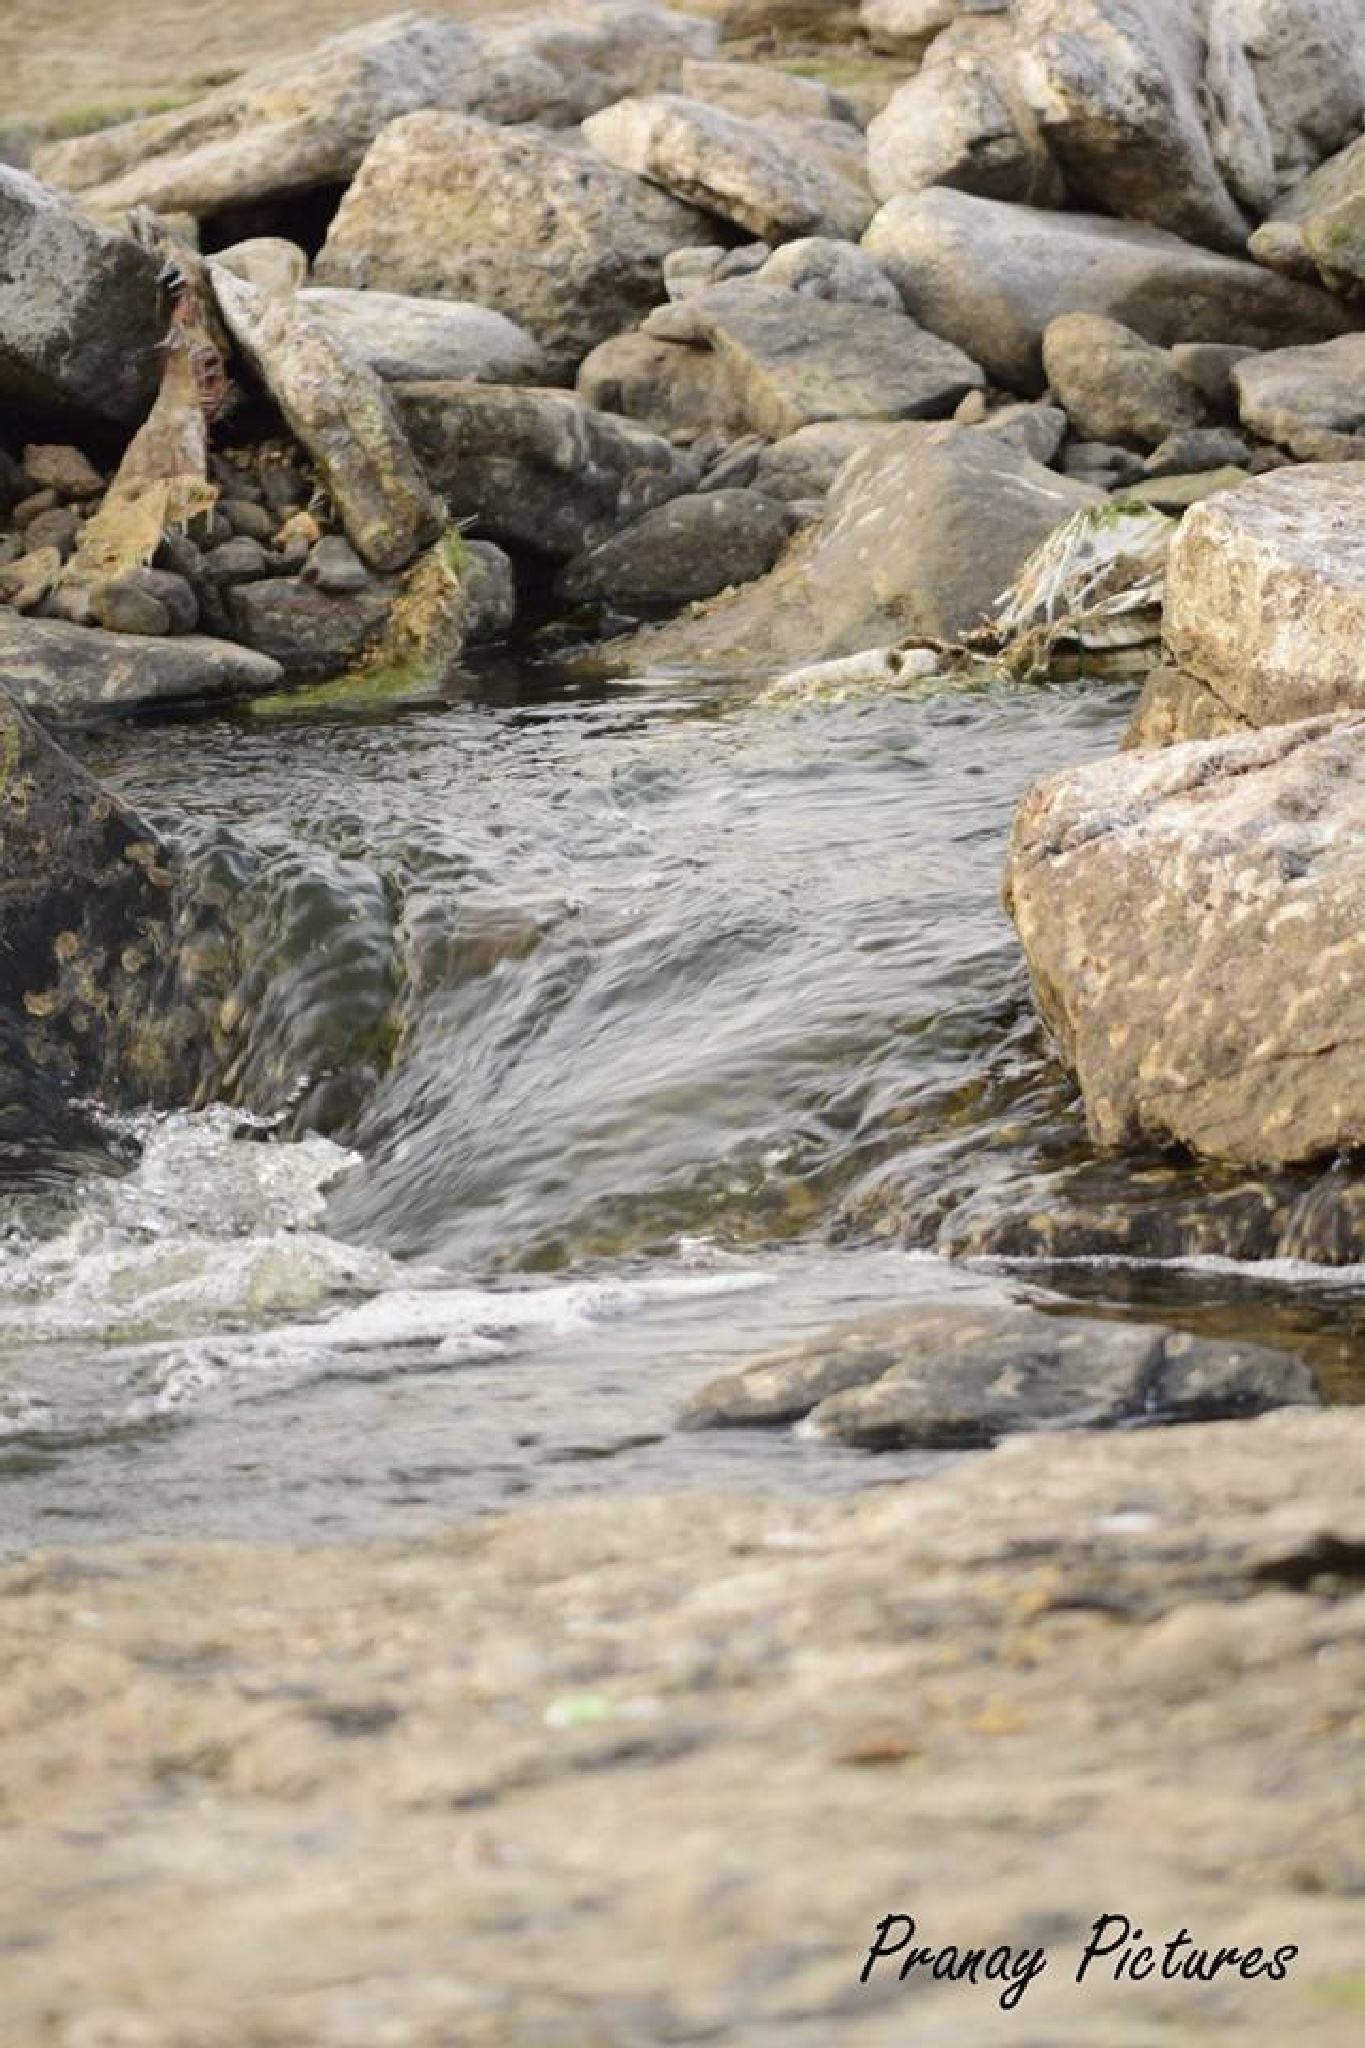 Flowing Water 2 by Pranay Pictures